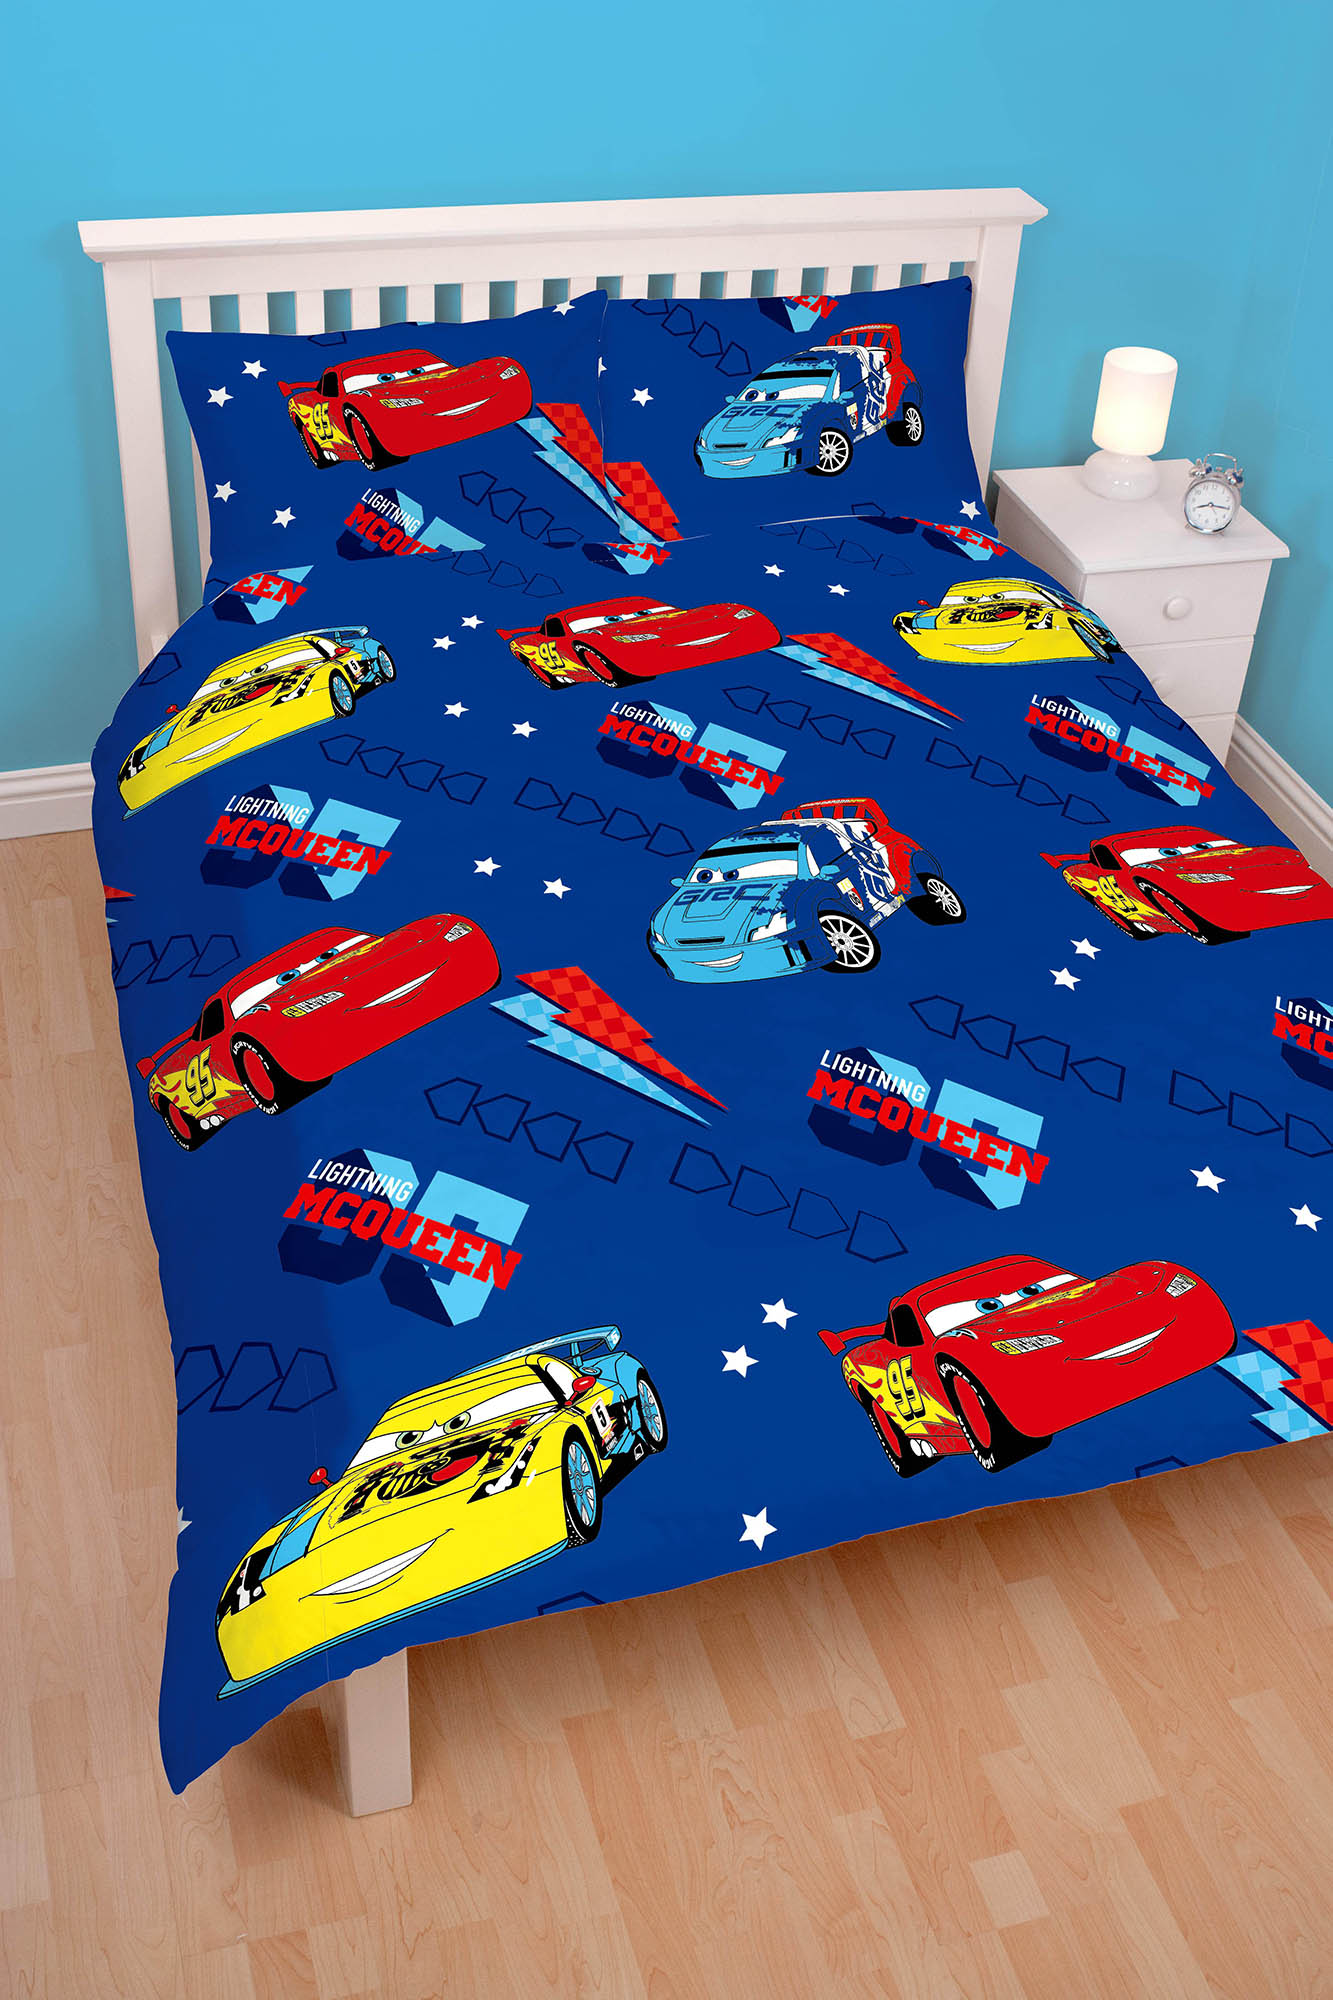 disney cars 39 kolben 39 doppel bettdecke bettbezug set jungen kinder blau ebay. Black Bedroom Furniture Sets. Home Design Ideas